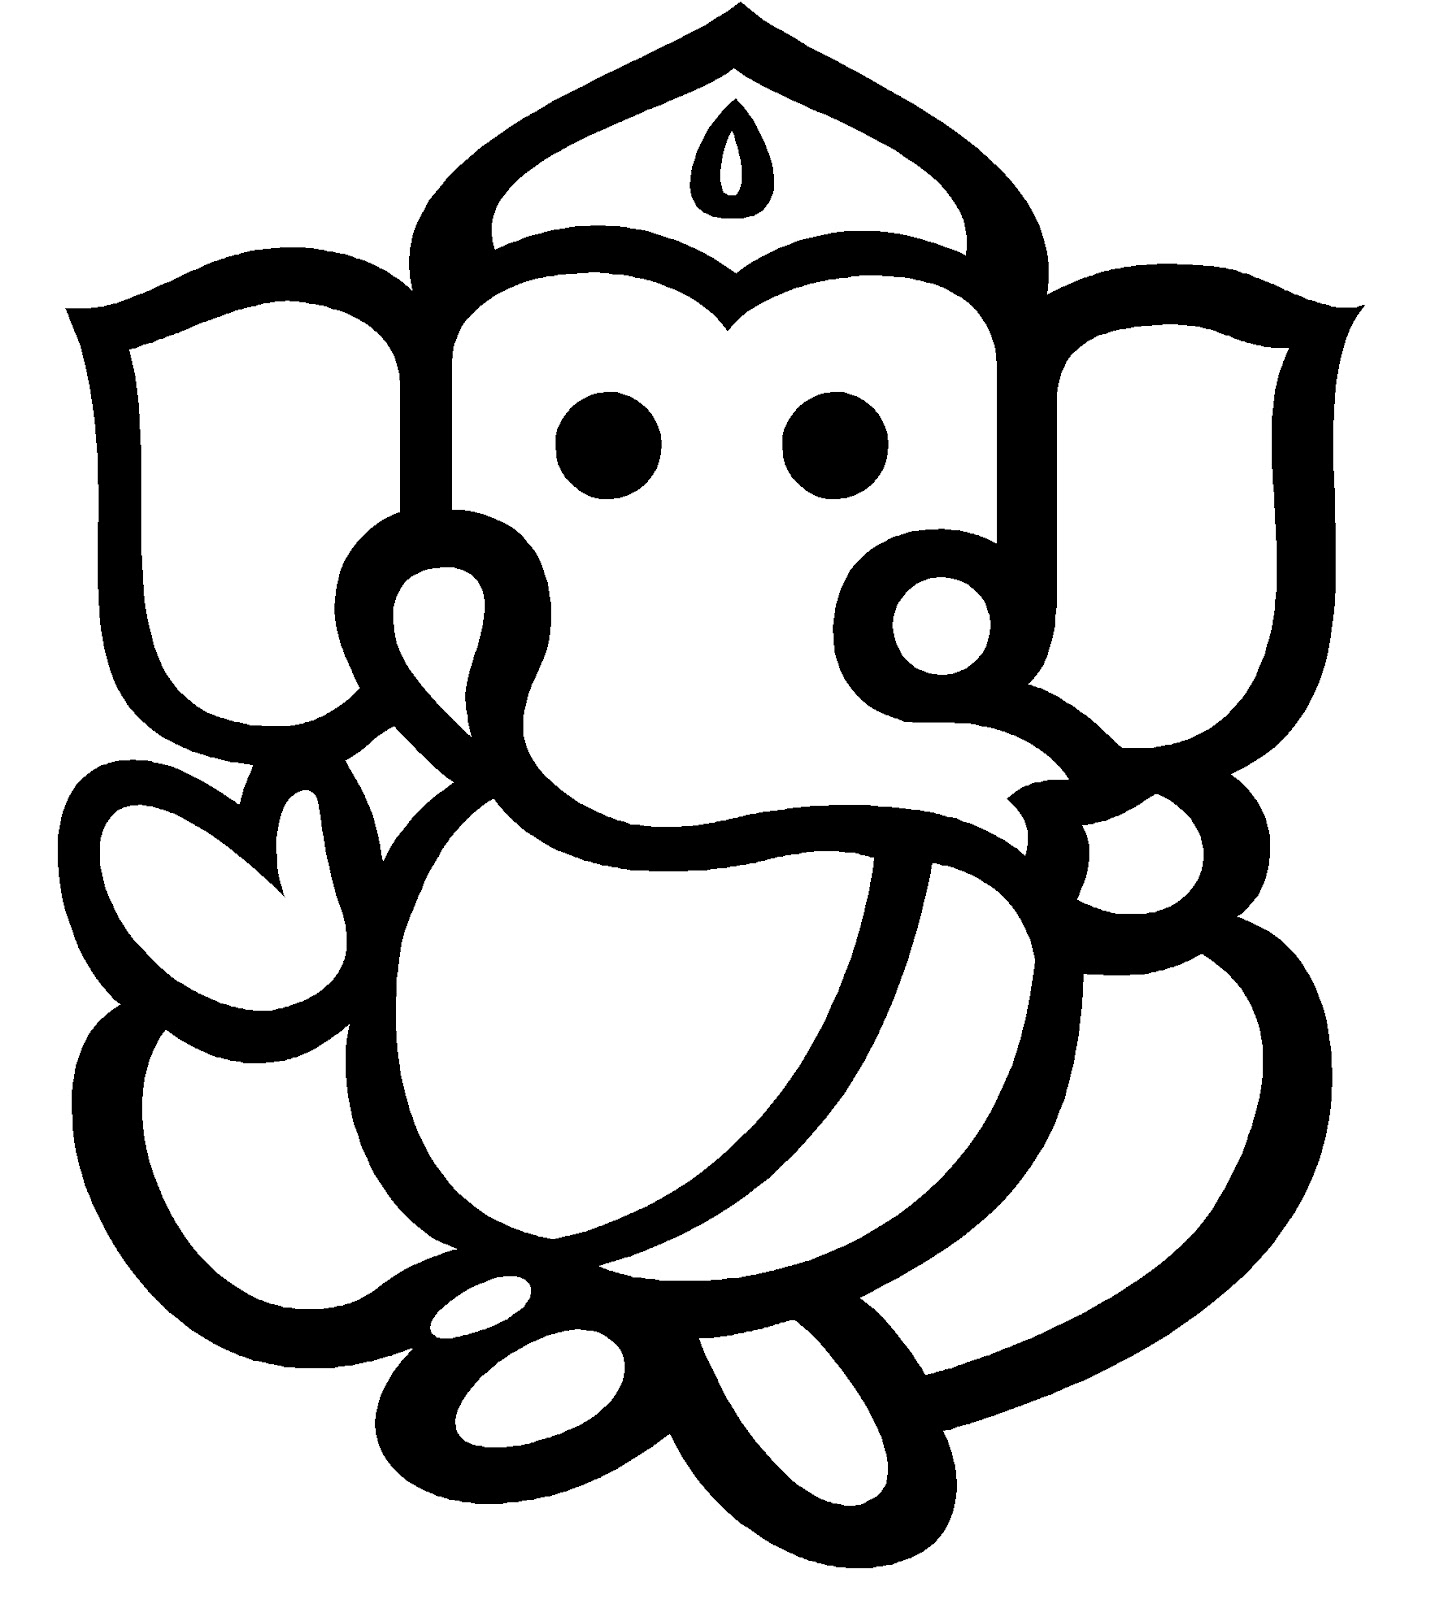 Lord ganesh images clipart image transparent stock Lord Ganesha Clipart Png (+) - Free Download | fourjay.org image transparent stock